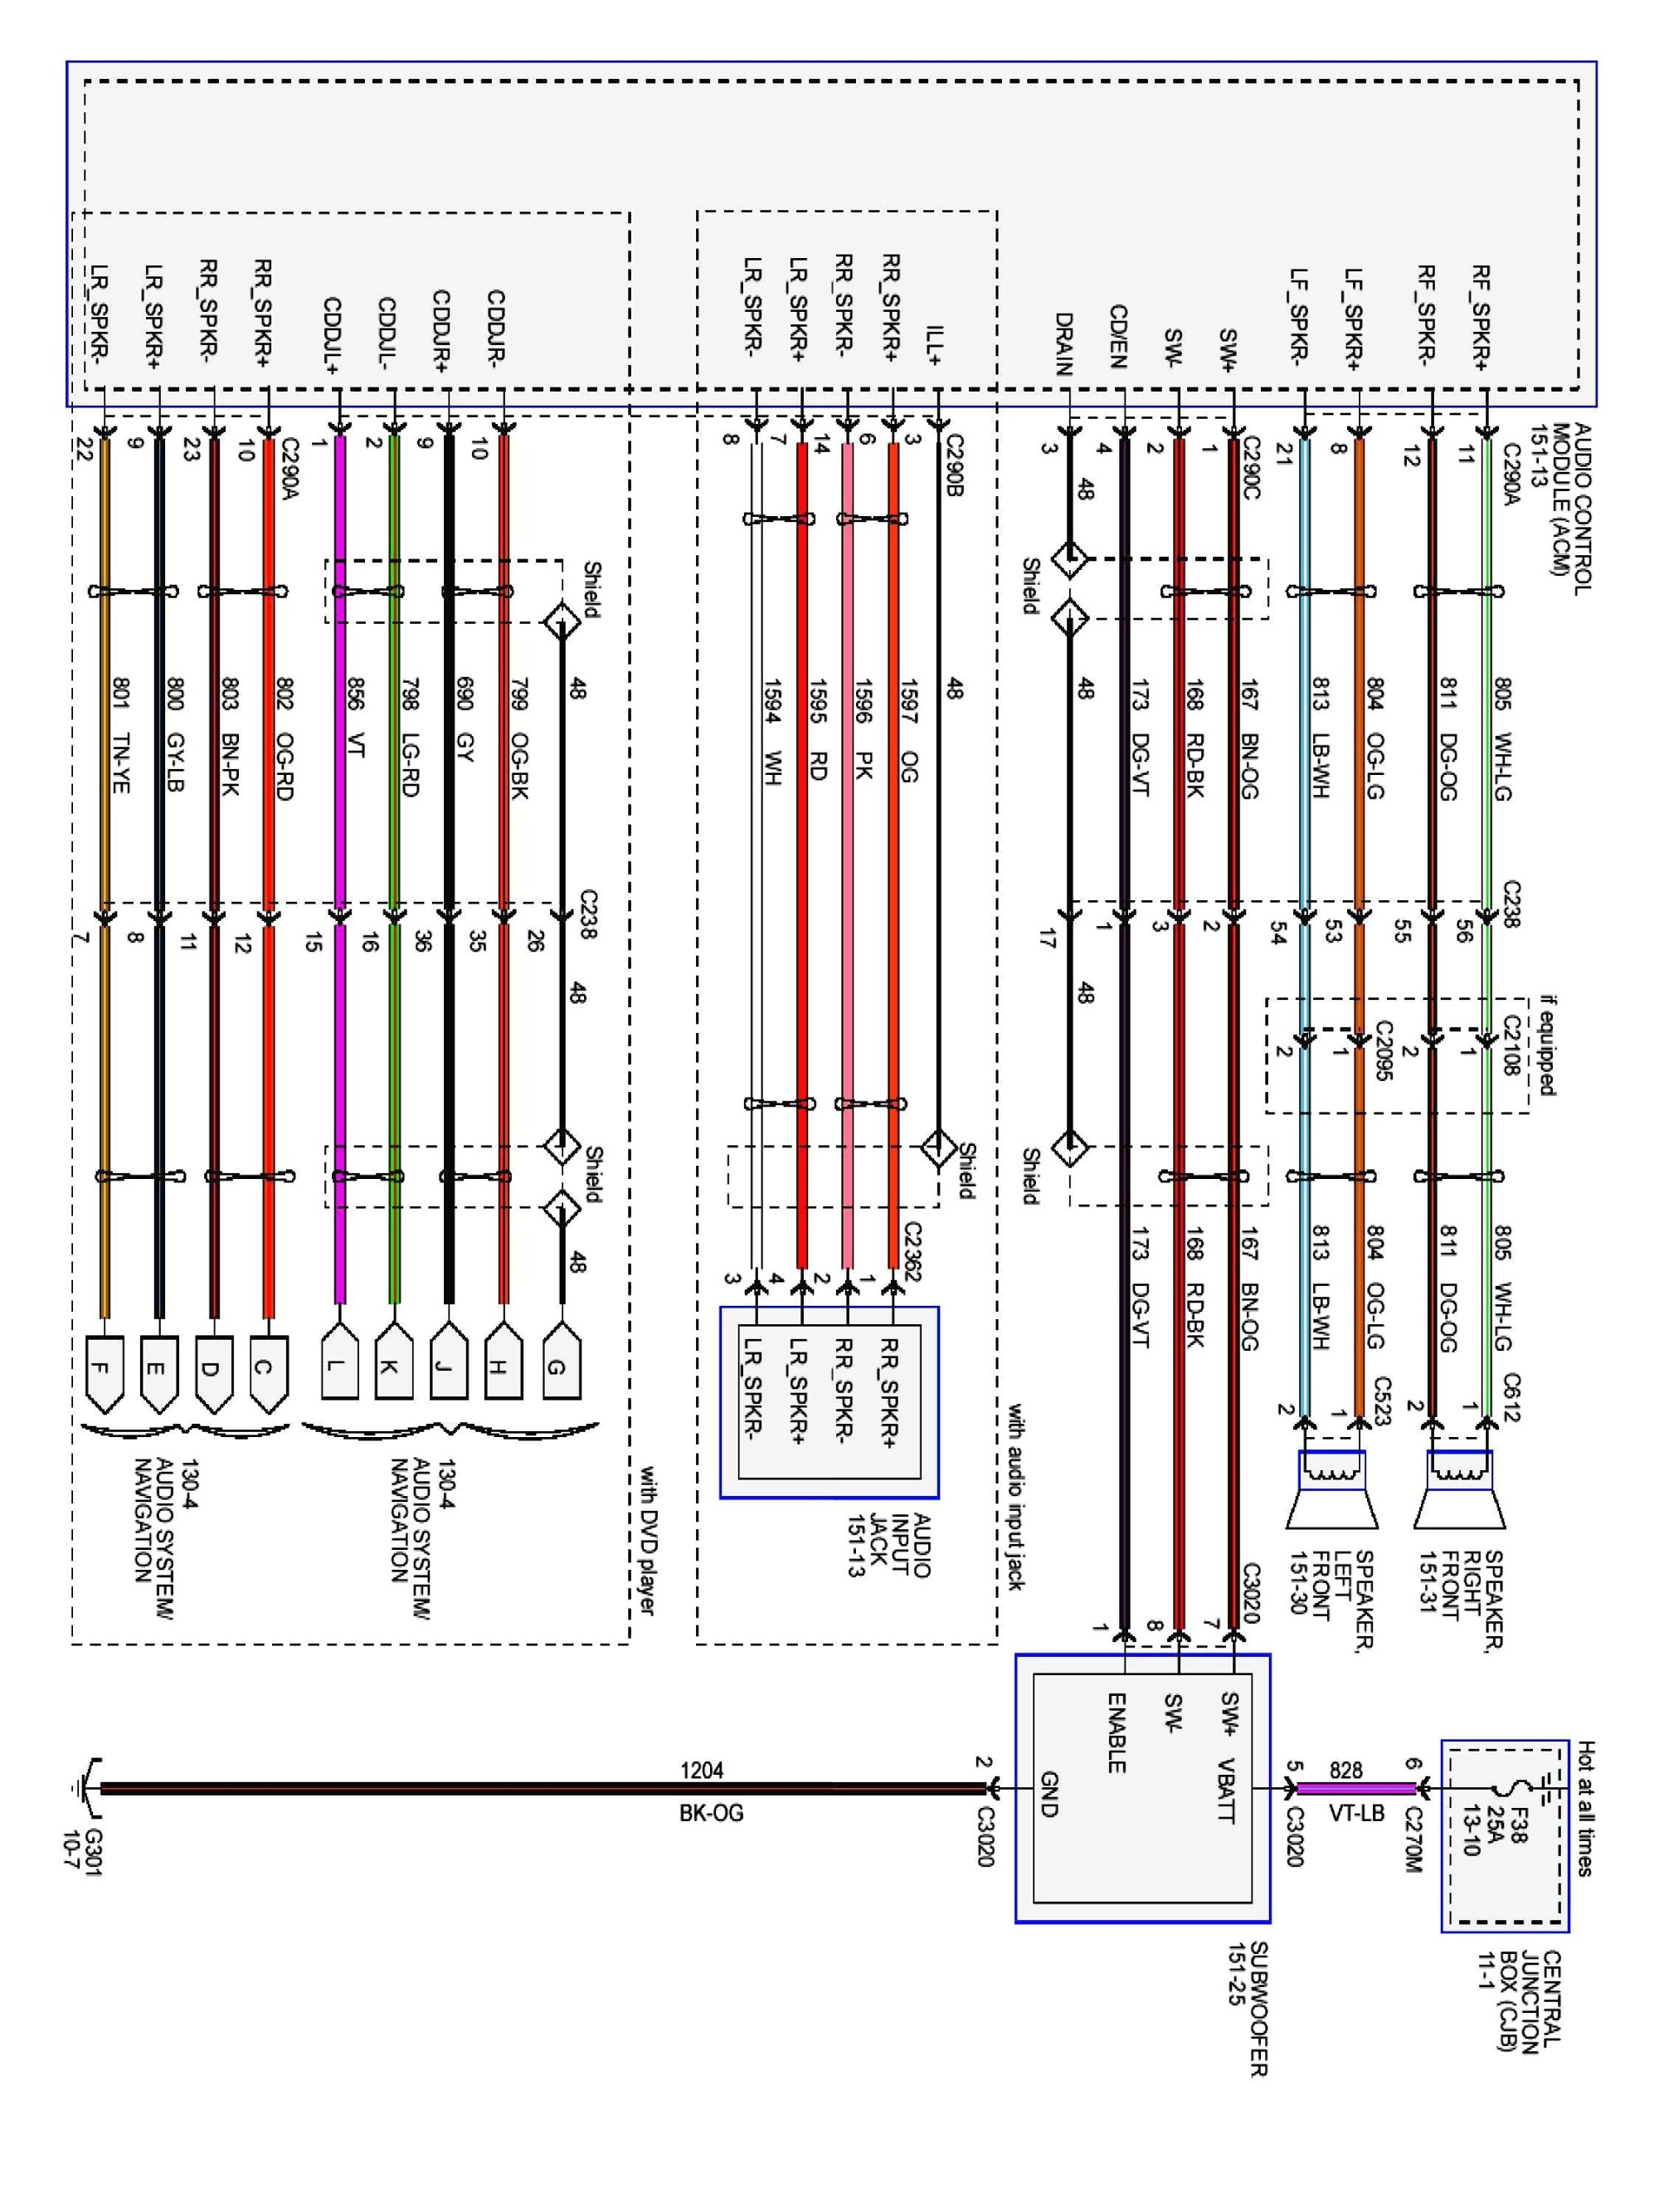 hight resolution of 2004 f550 fuse diagram schematics wiring diagrams u2022 rh orwellvets co 04 ford f550 fuse panel